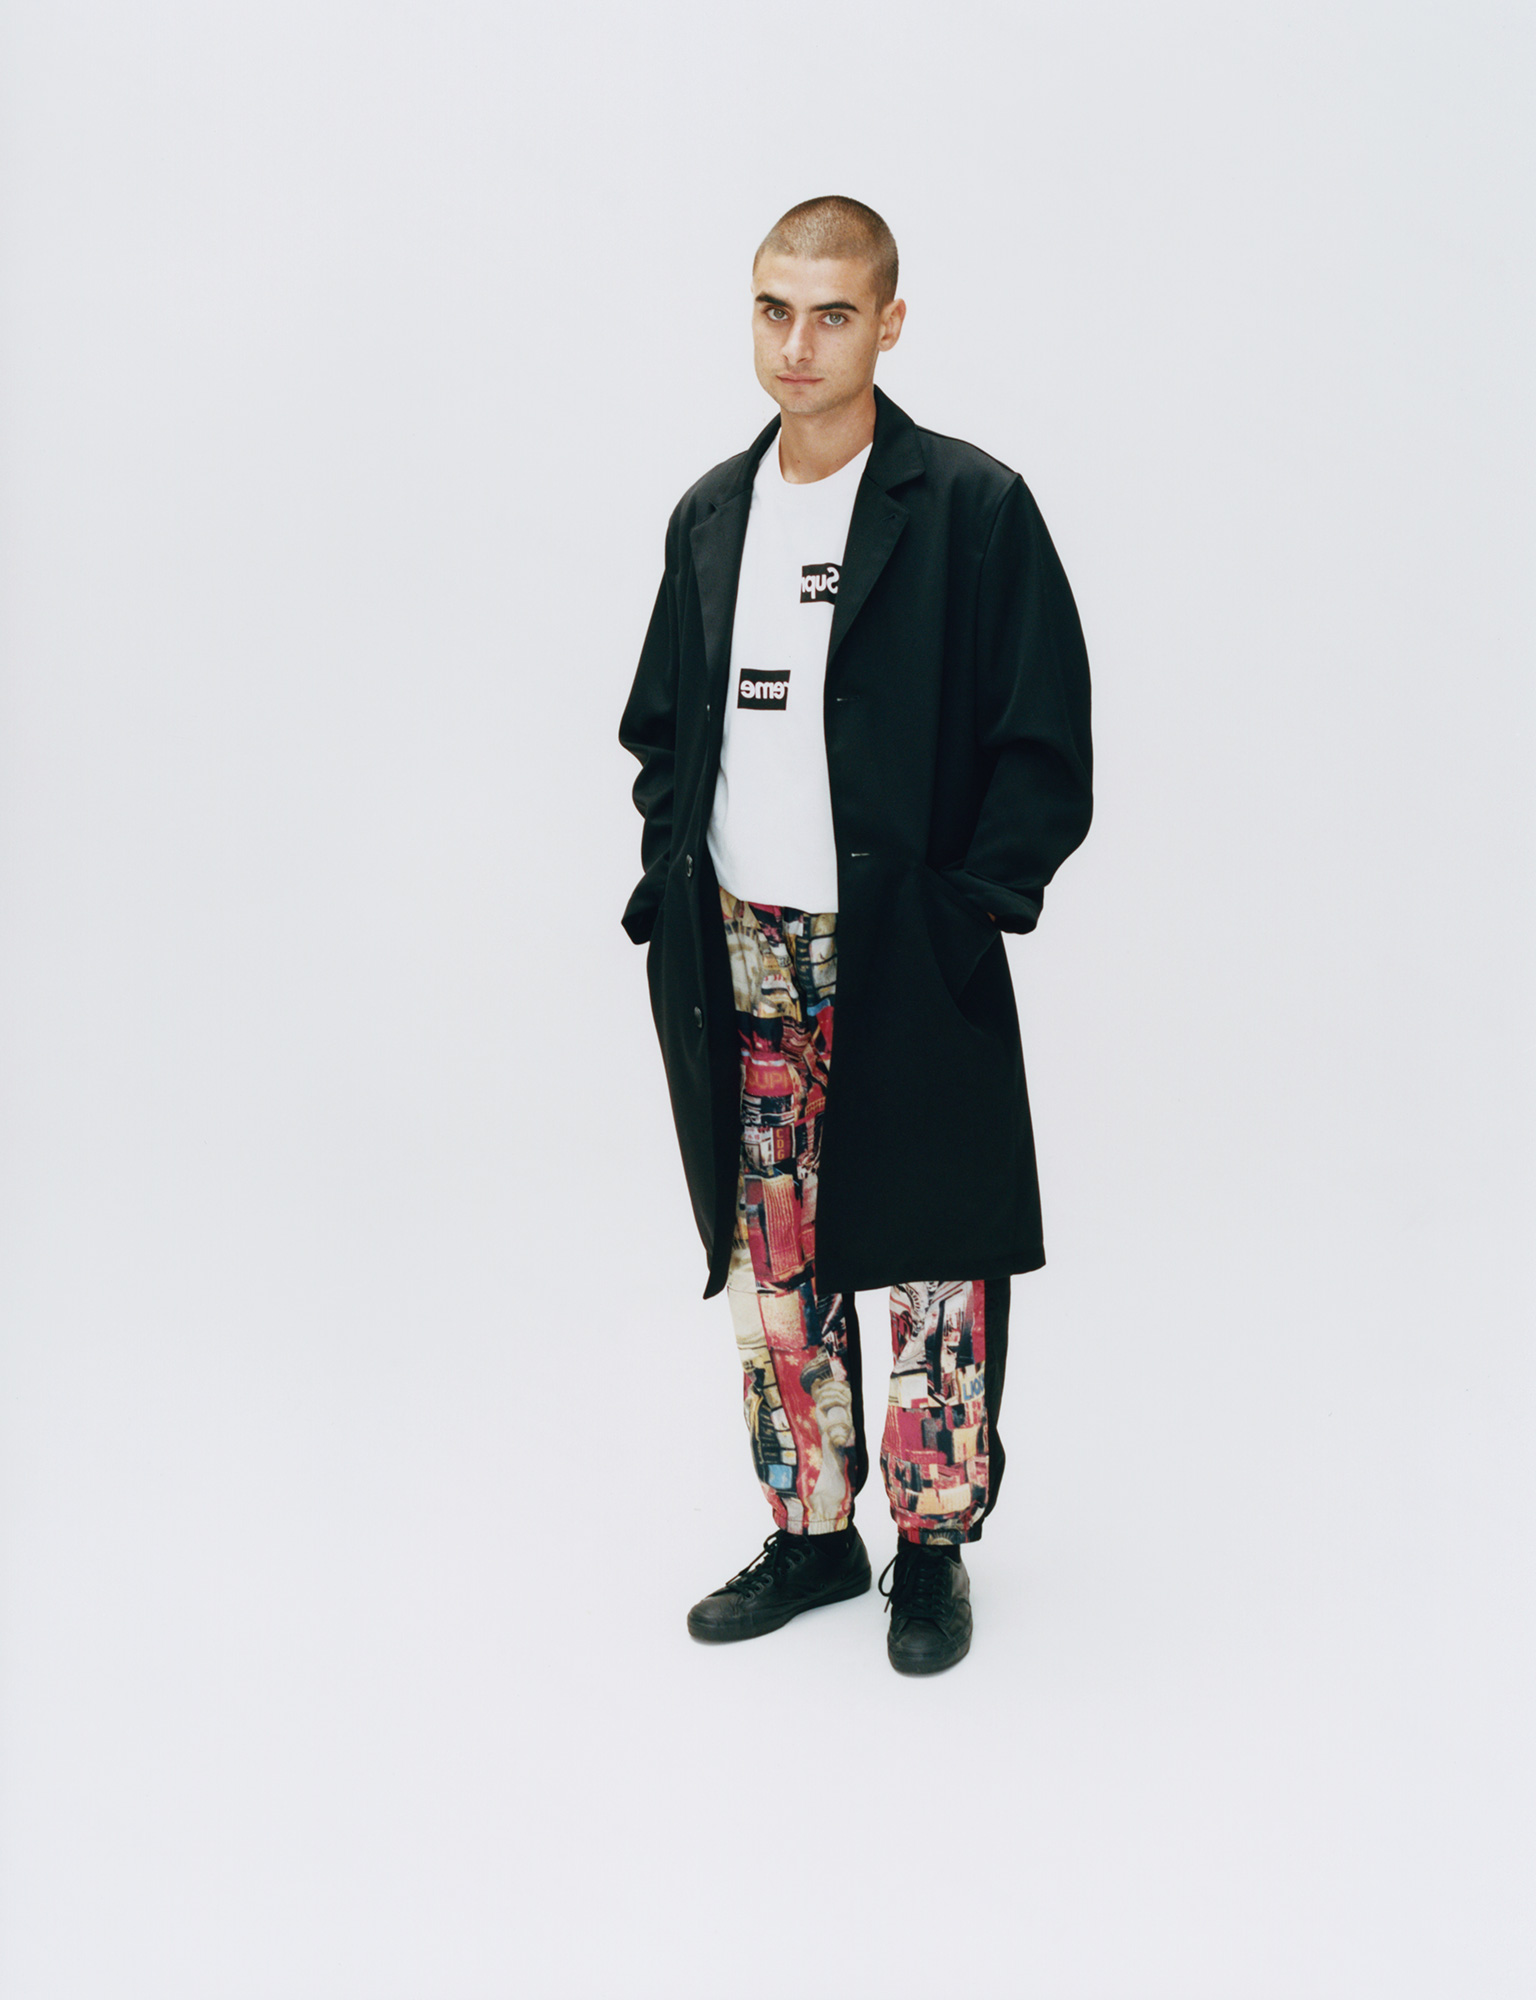 supreme-comme-des-garcons-shirt-2018aw-collaboration-release-20180915-week4-lookbook